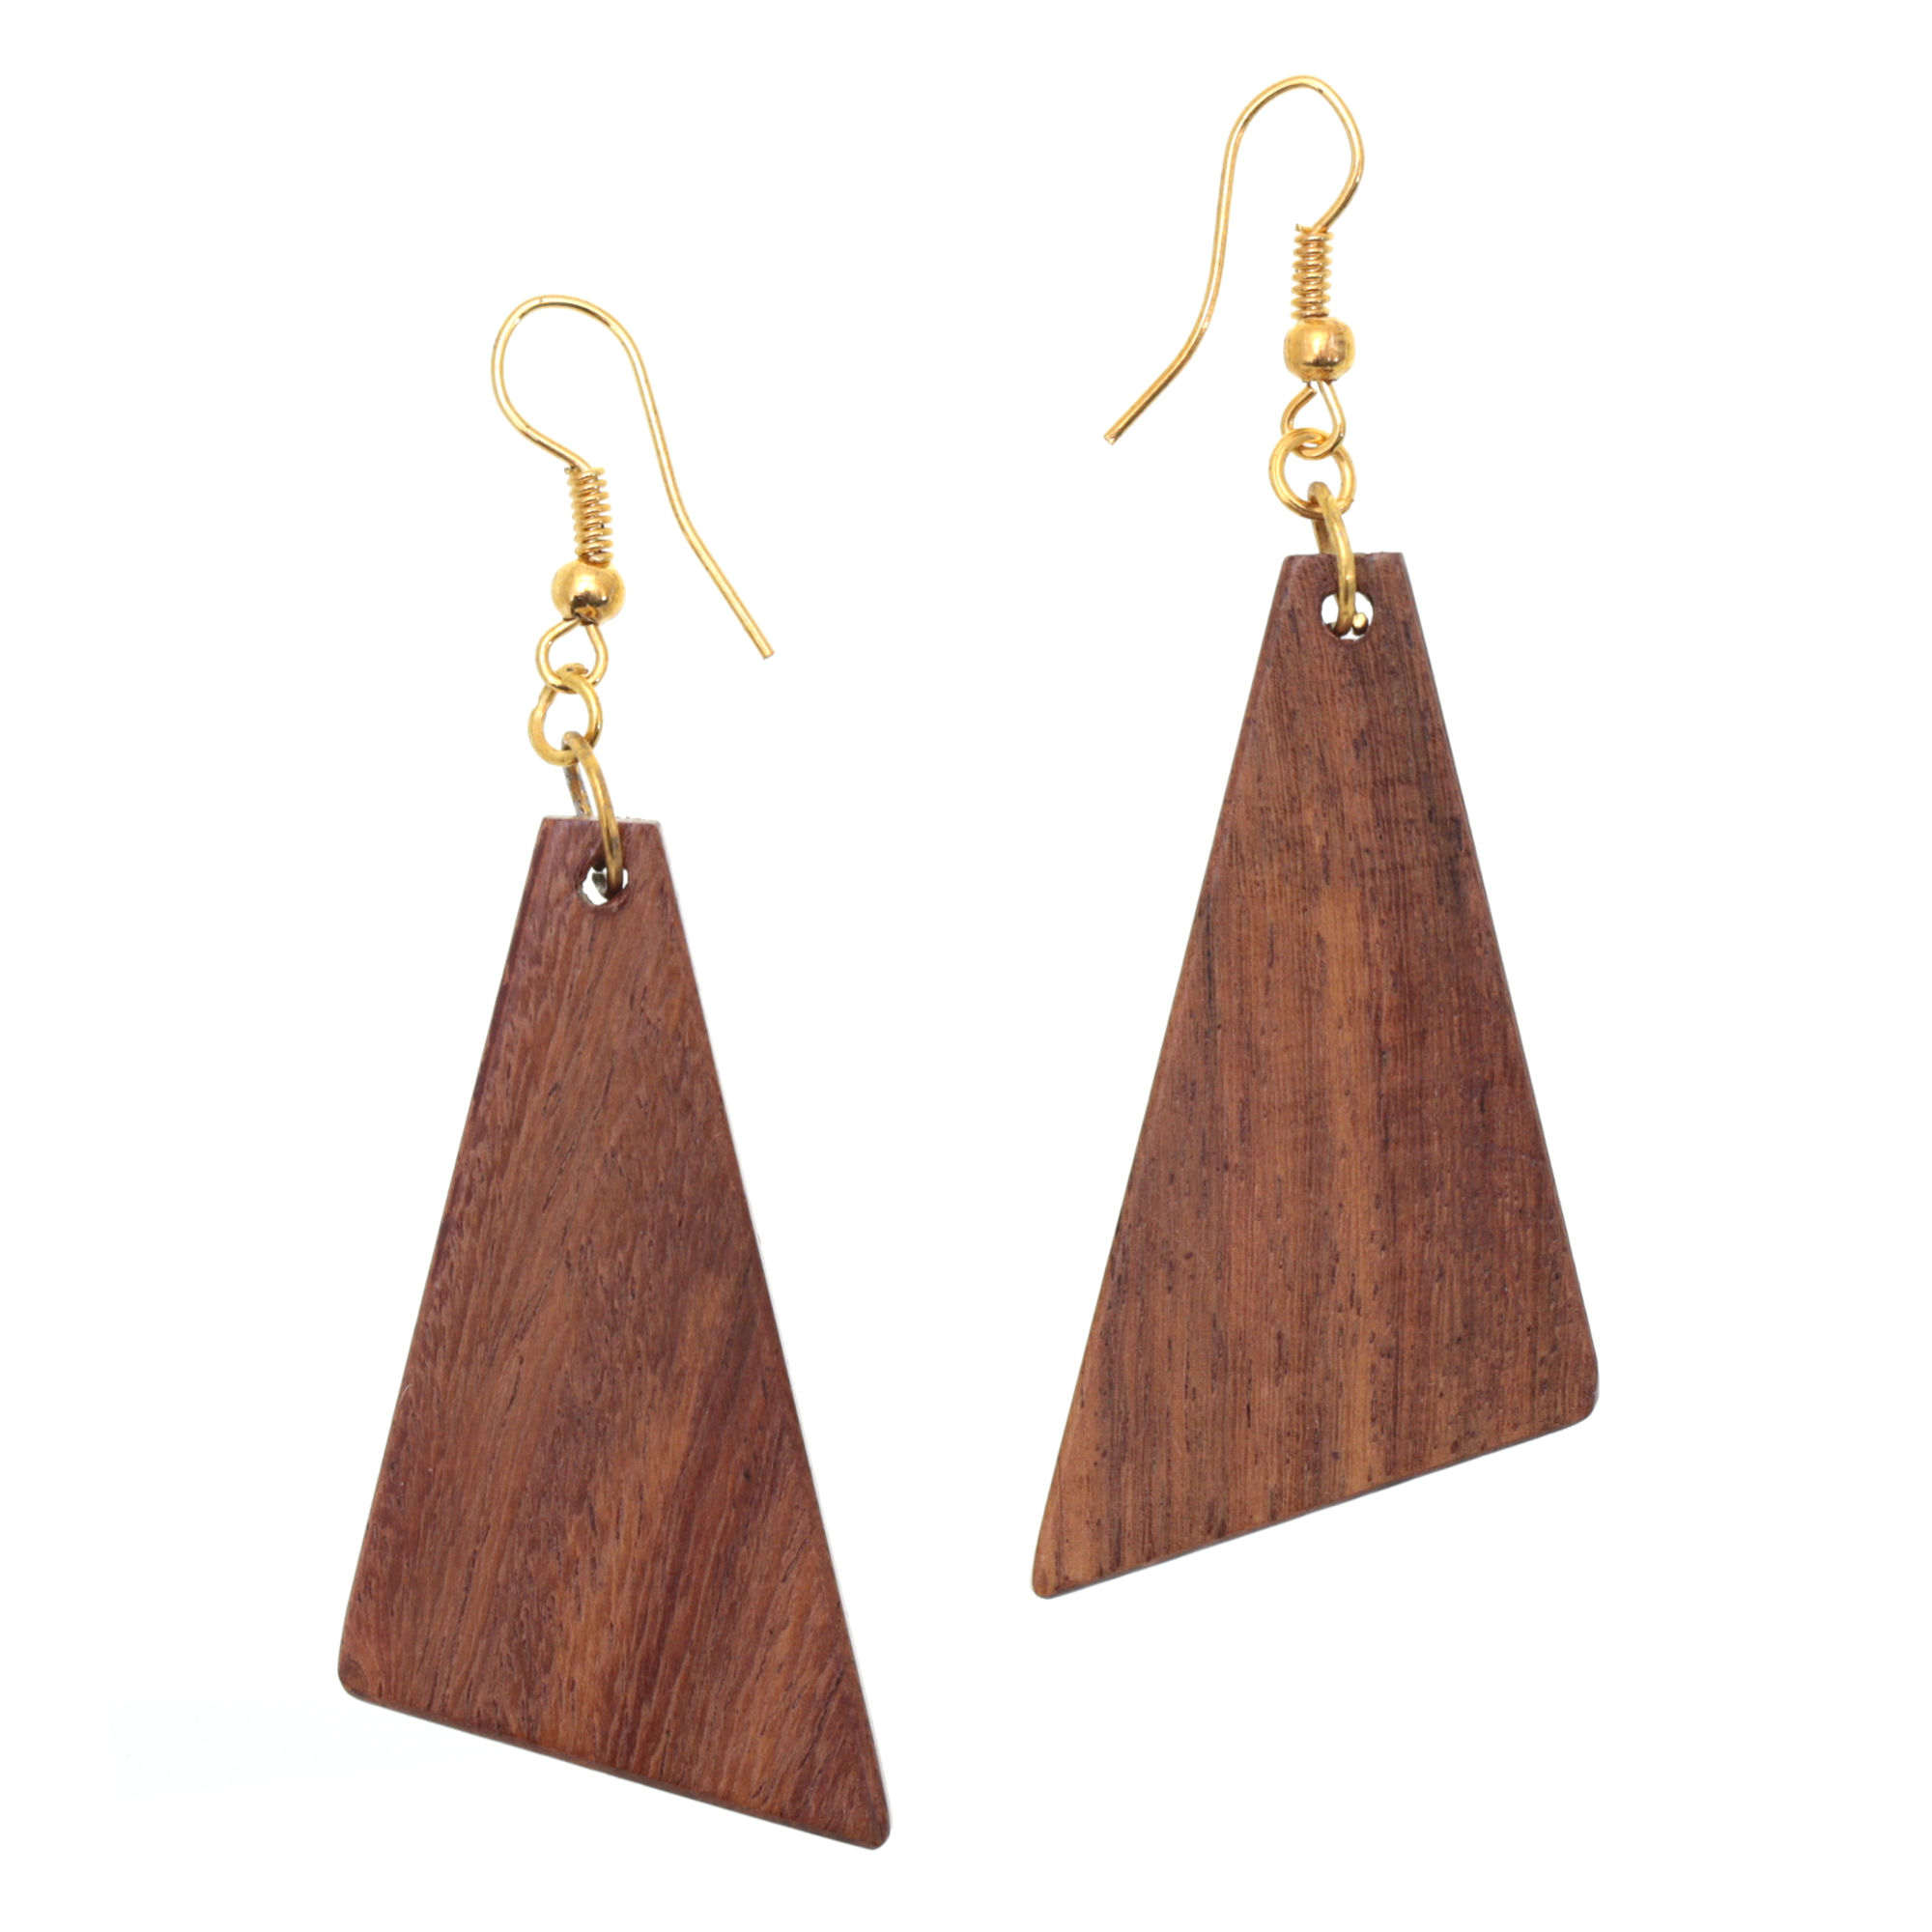 Triangular Drop Earrings Made From Sheesham Wood 7cm Length